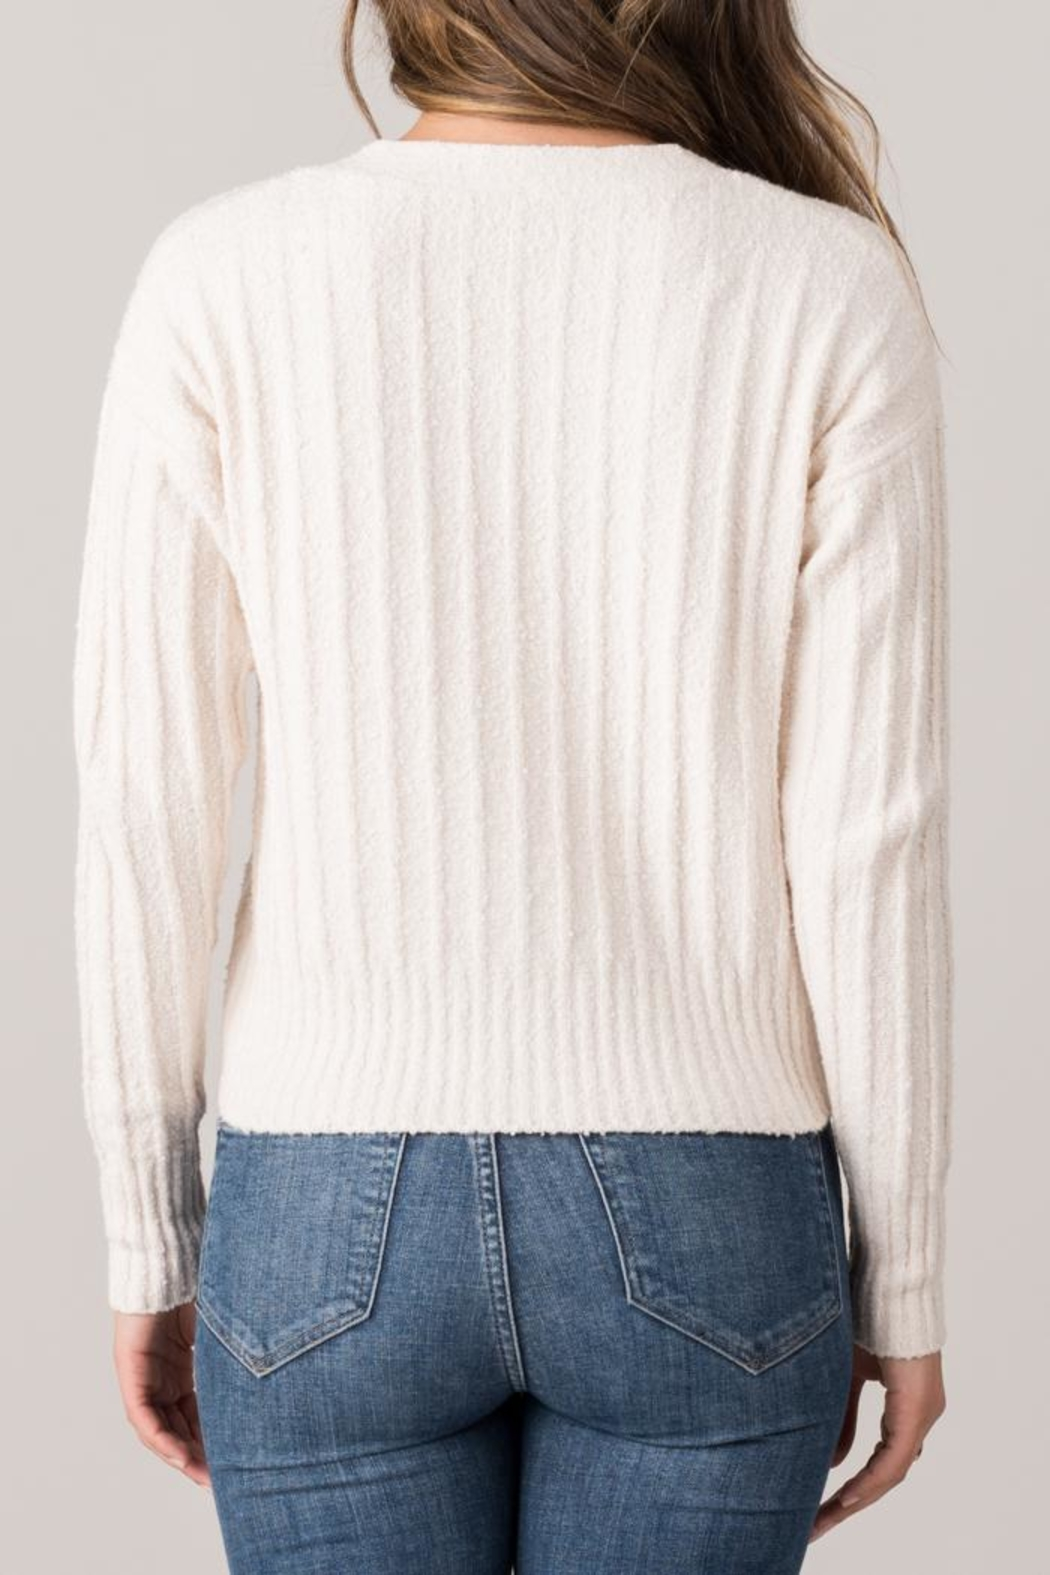 Margaret O'Leary Rianna Cardigan - Front Full Image